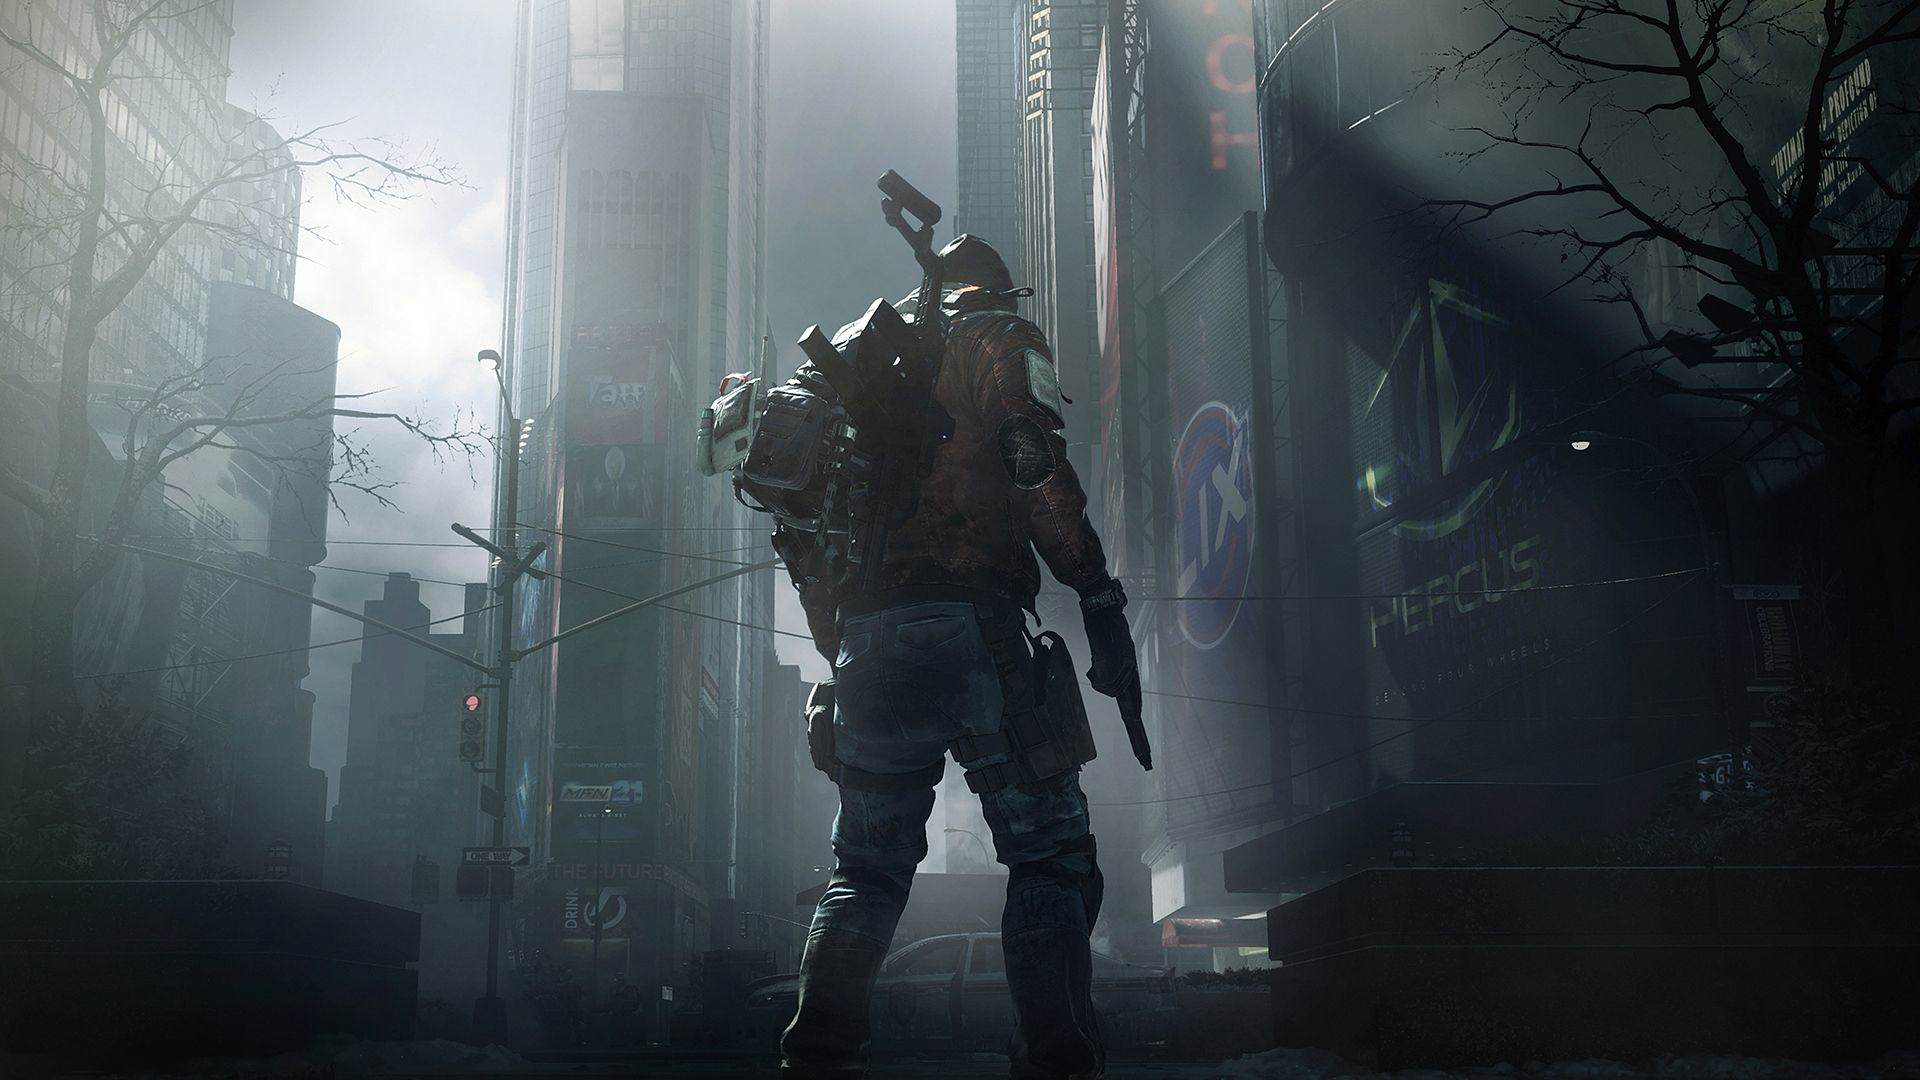 Gorgeous PC Trailer For The Division Shows Off Nvidia Tech get a free tom clancy s the division copy with nvidia video card purchase 500565 2